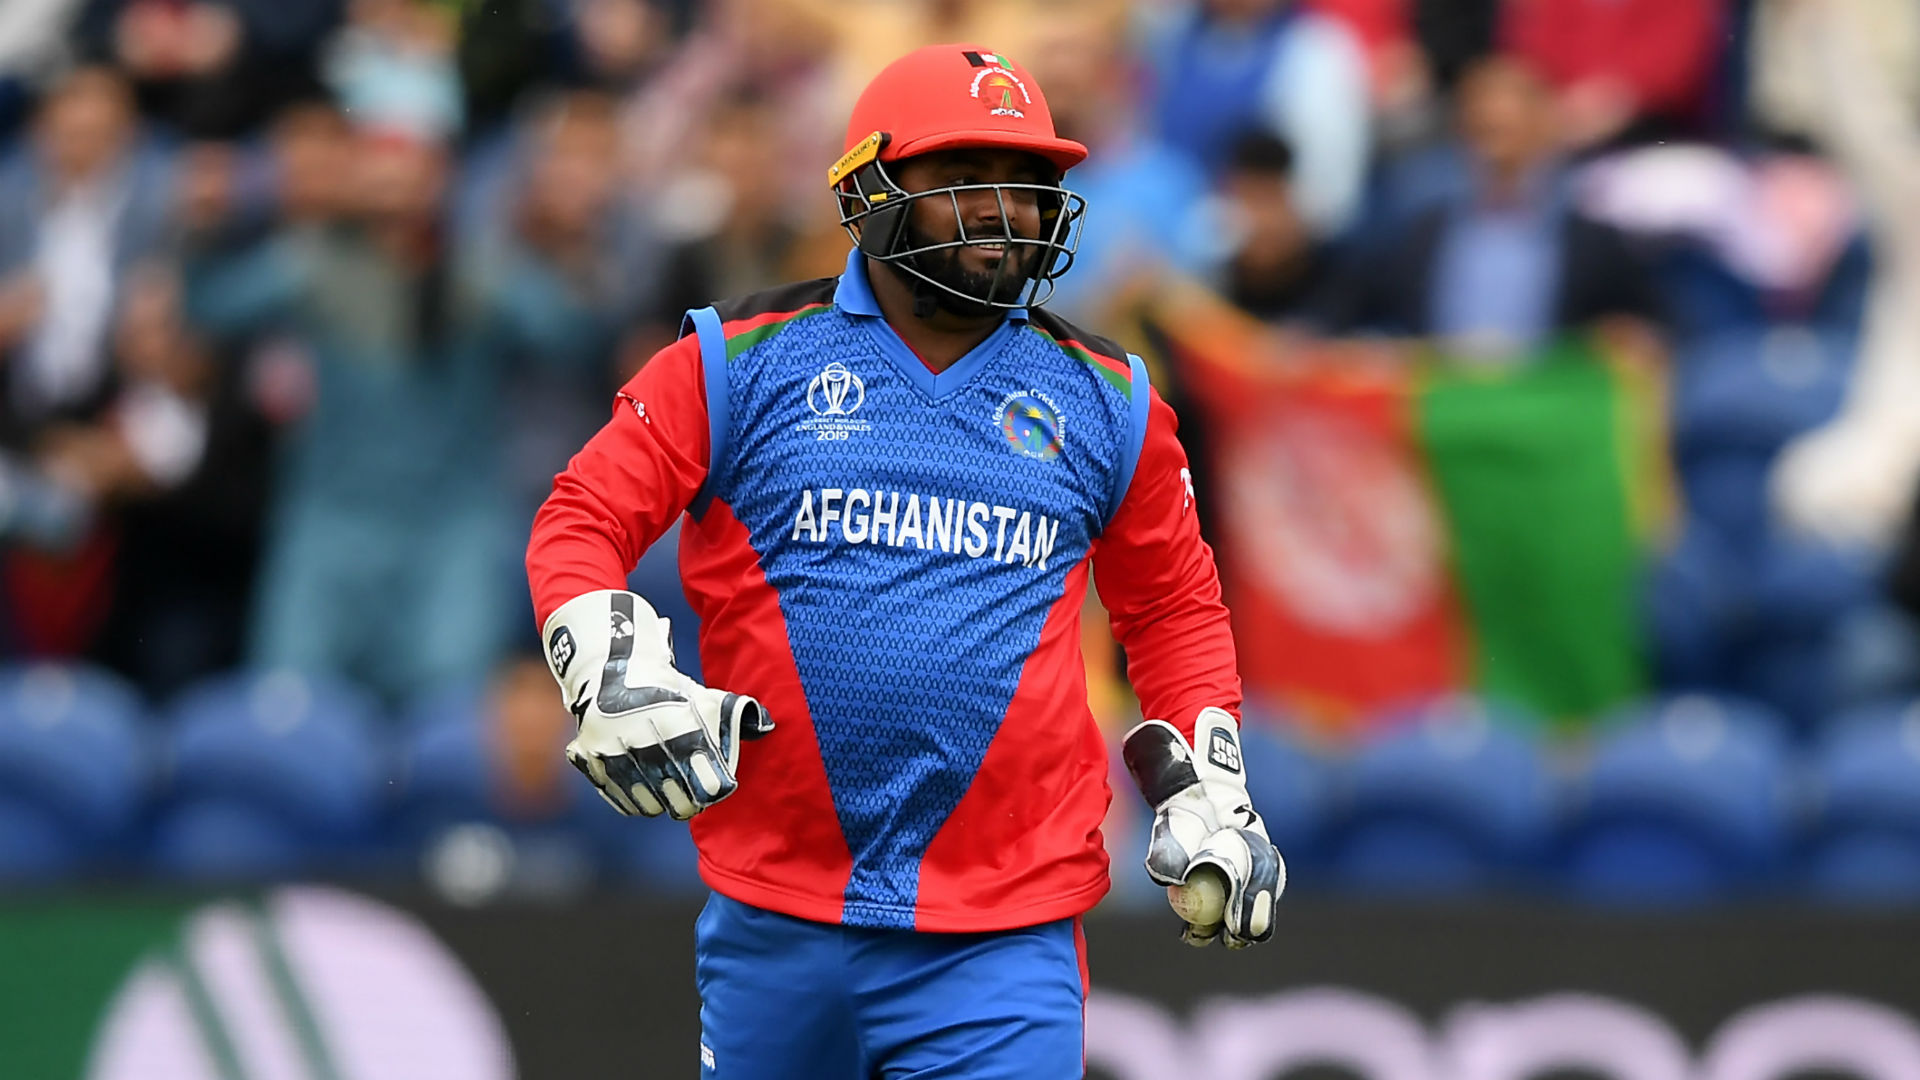 Afghanistan's Shahzad out of Cricket World Cup   CRICKET News ...